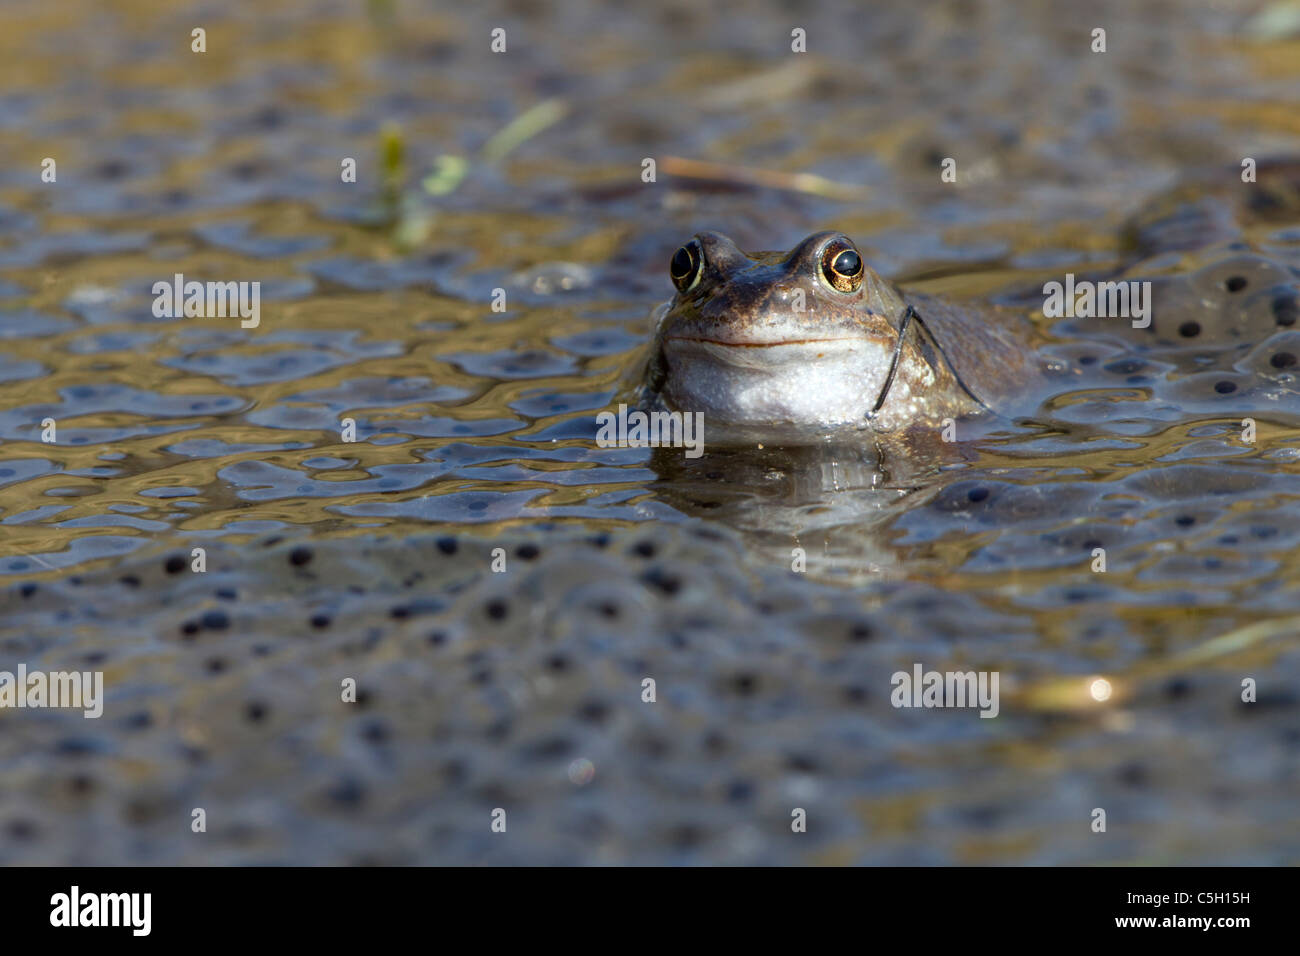 Common Frogs in the mating season 24 March 2011 - Stock Image